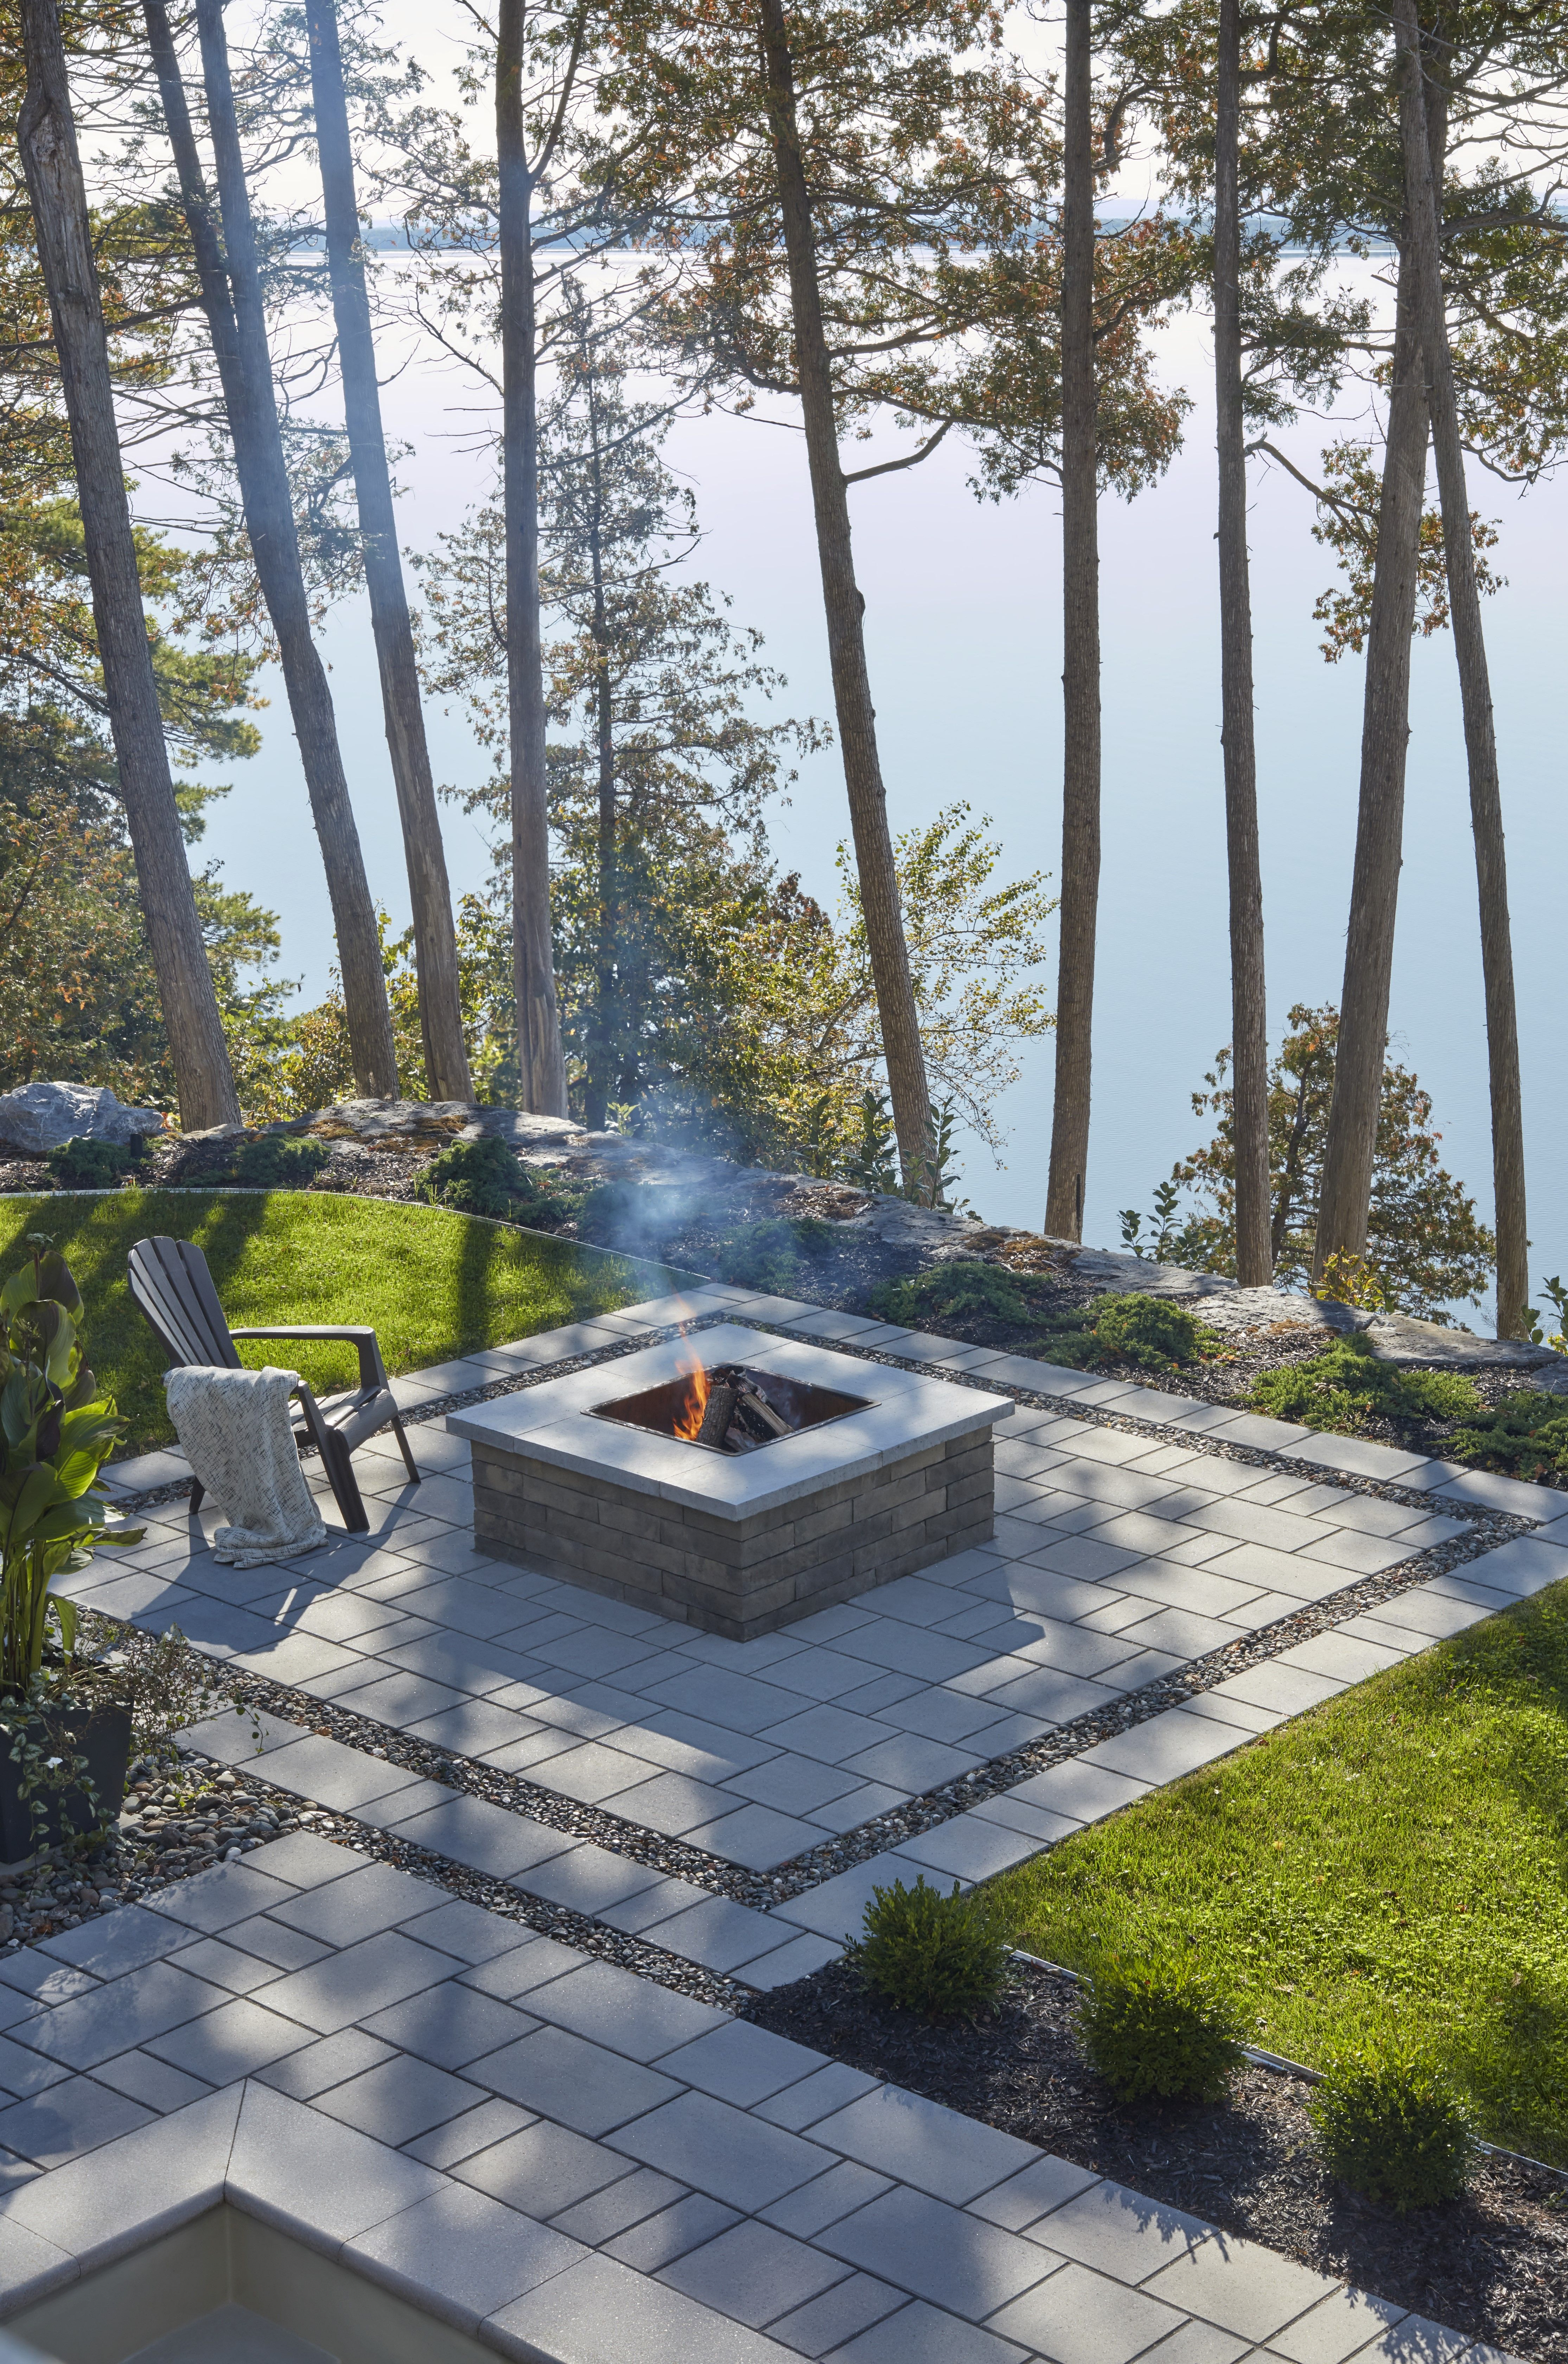 This Backyard Fire Pit Design Is Inspired By Our Brandon Wall The Brandon Fire Pit Is A Pre Packaged Ready To Assemble In 2020 Outdoor Fire Fire Pit Backyard Outdoor